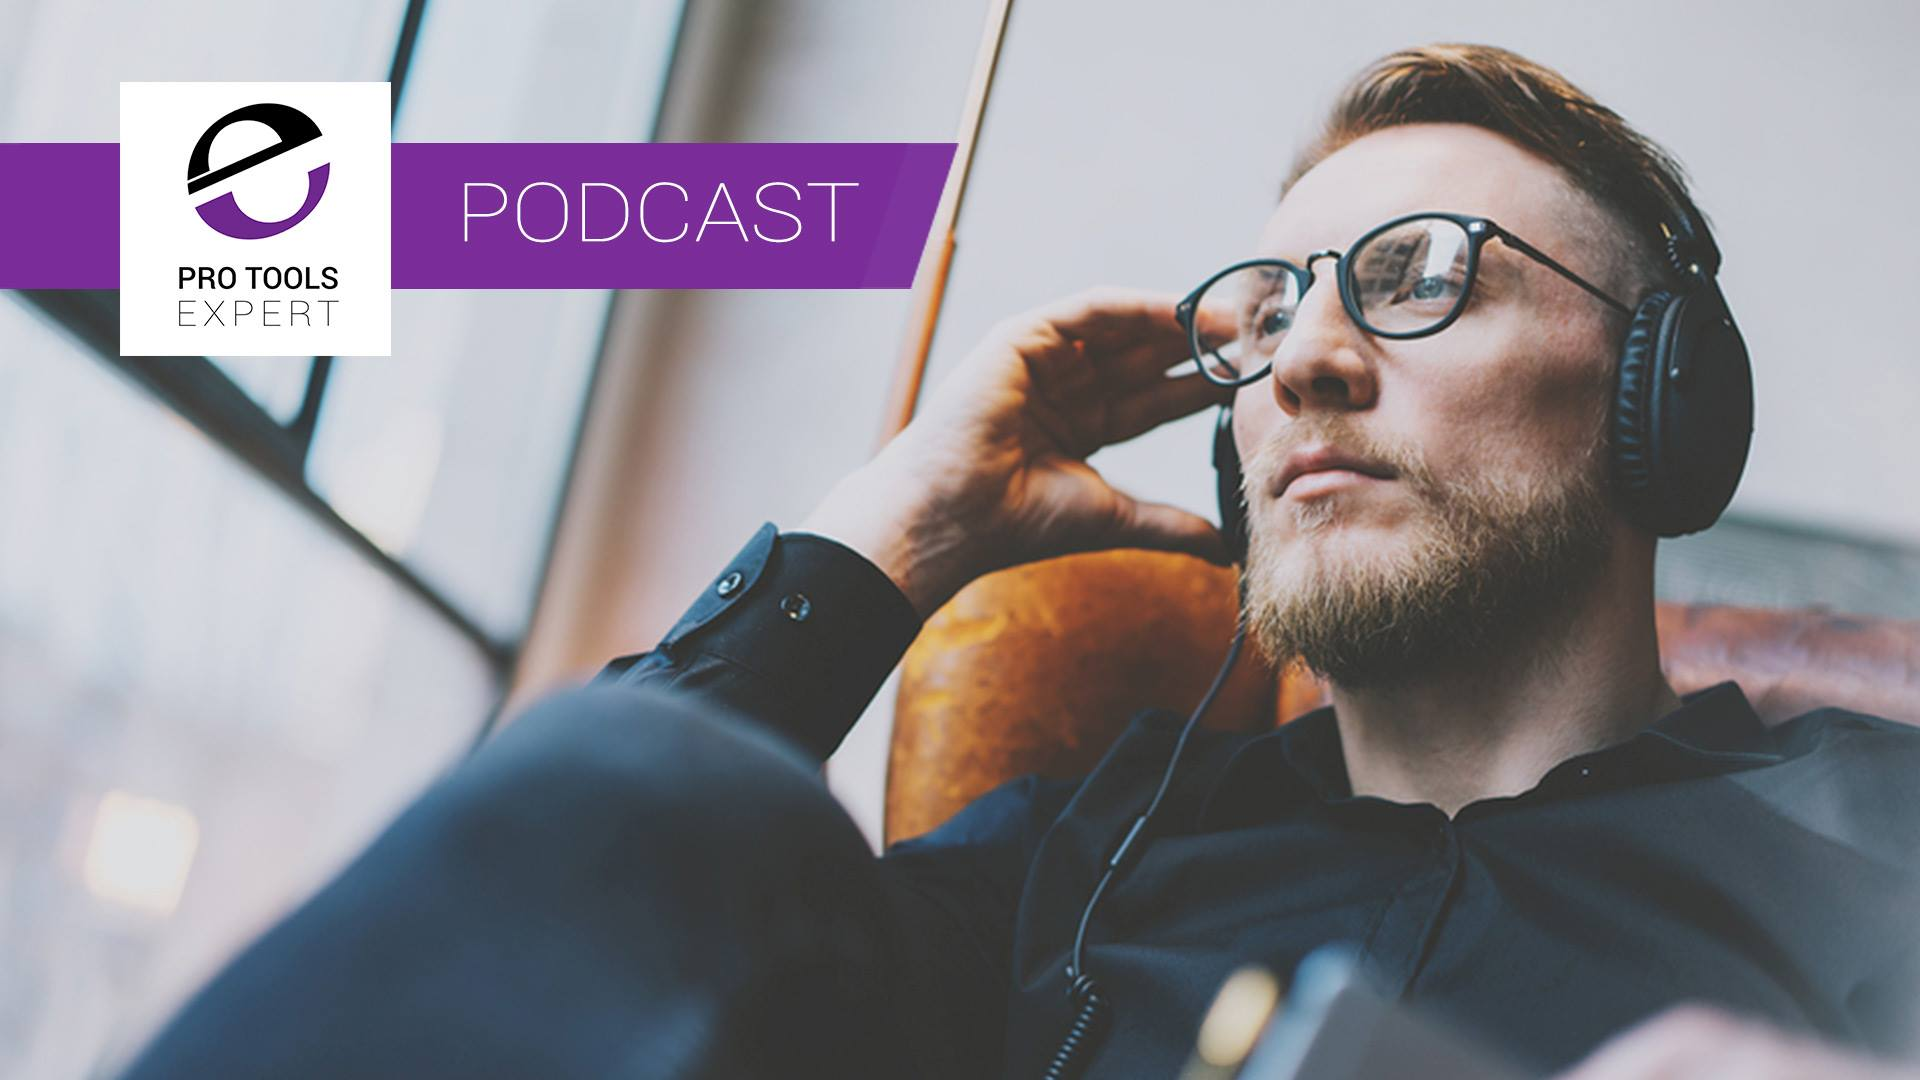 Pro Tools Expert Podcast Episode 258